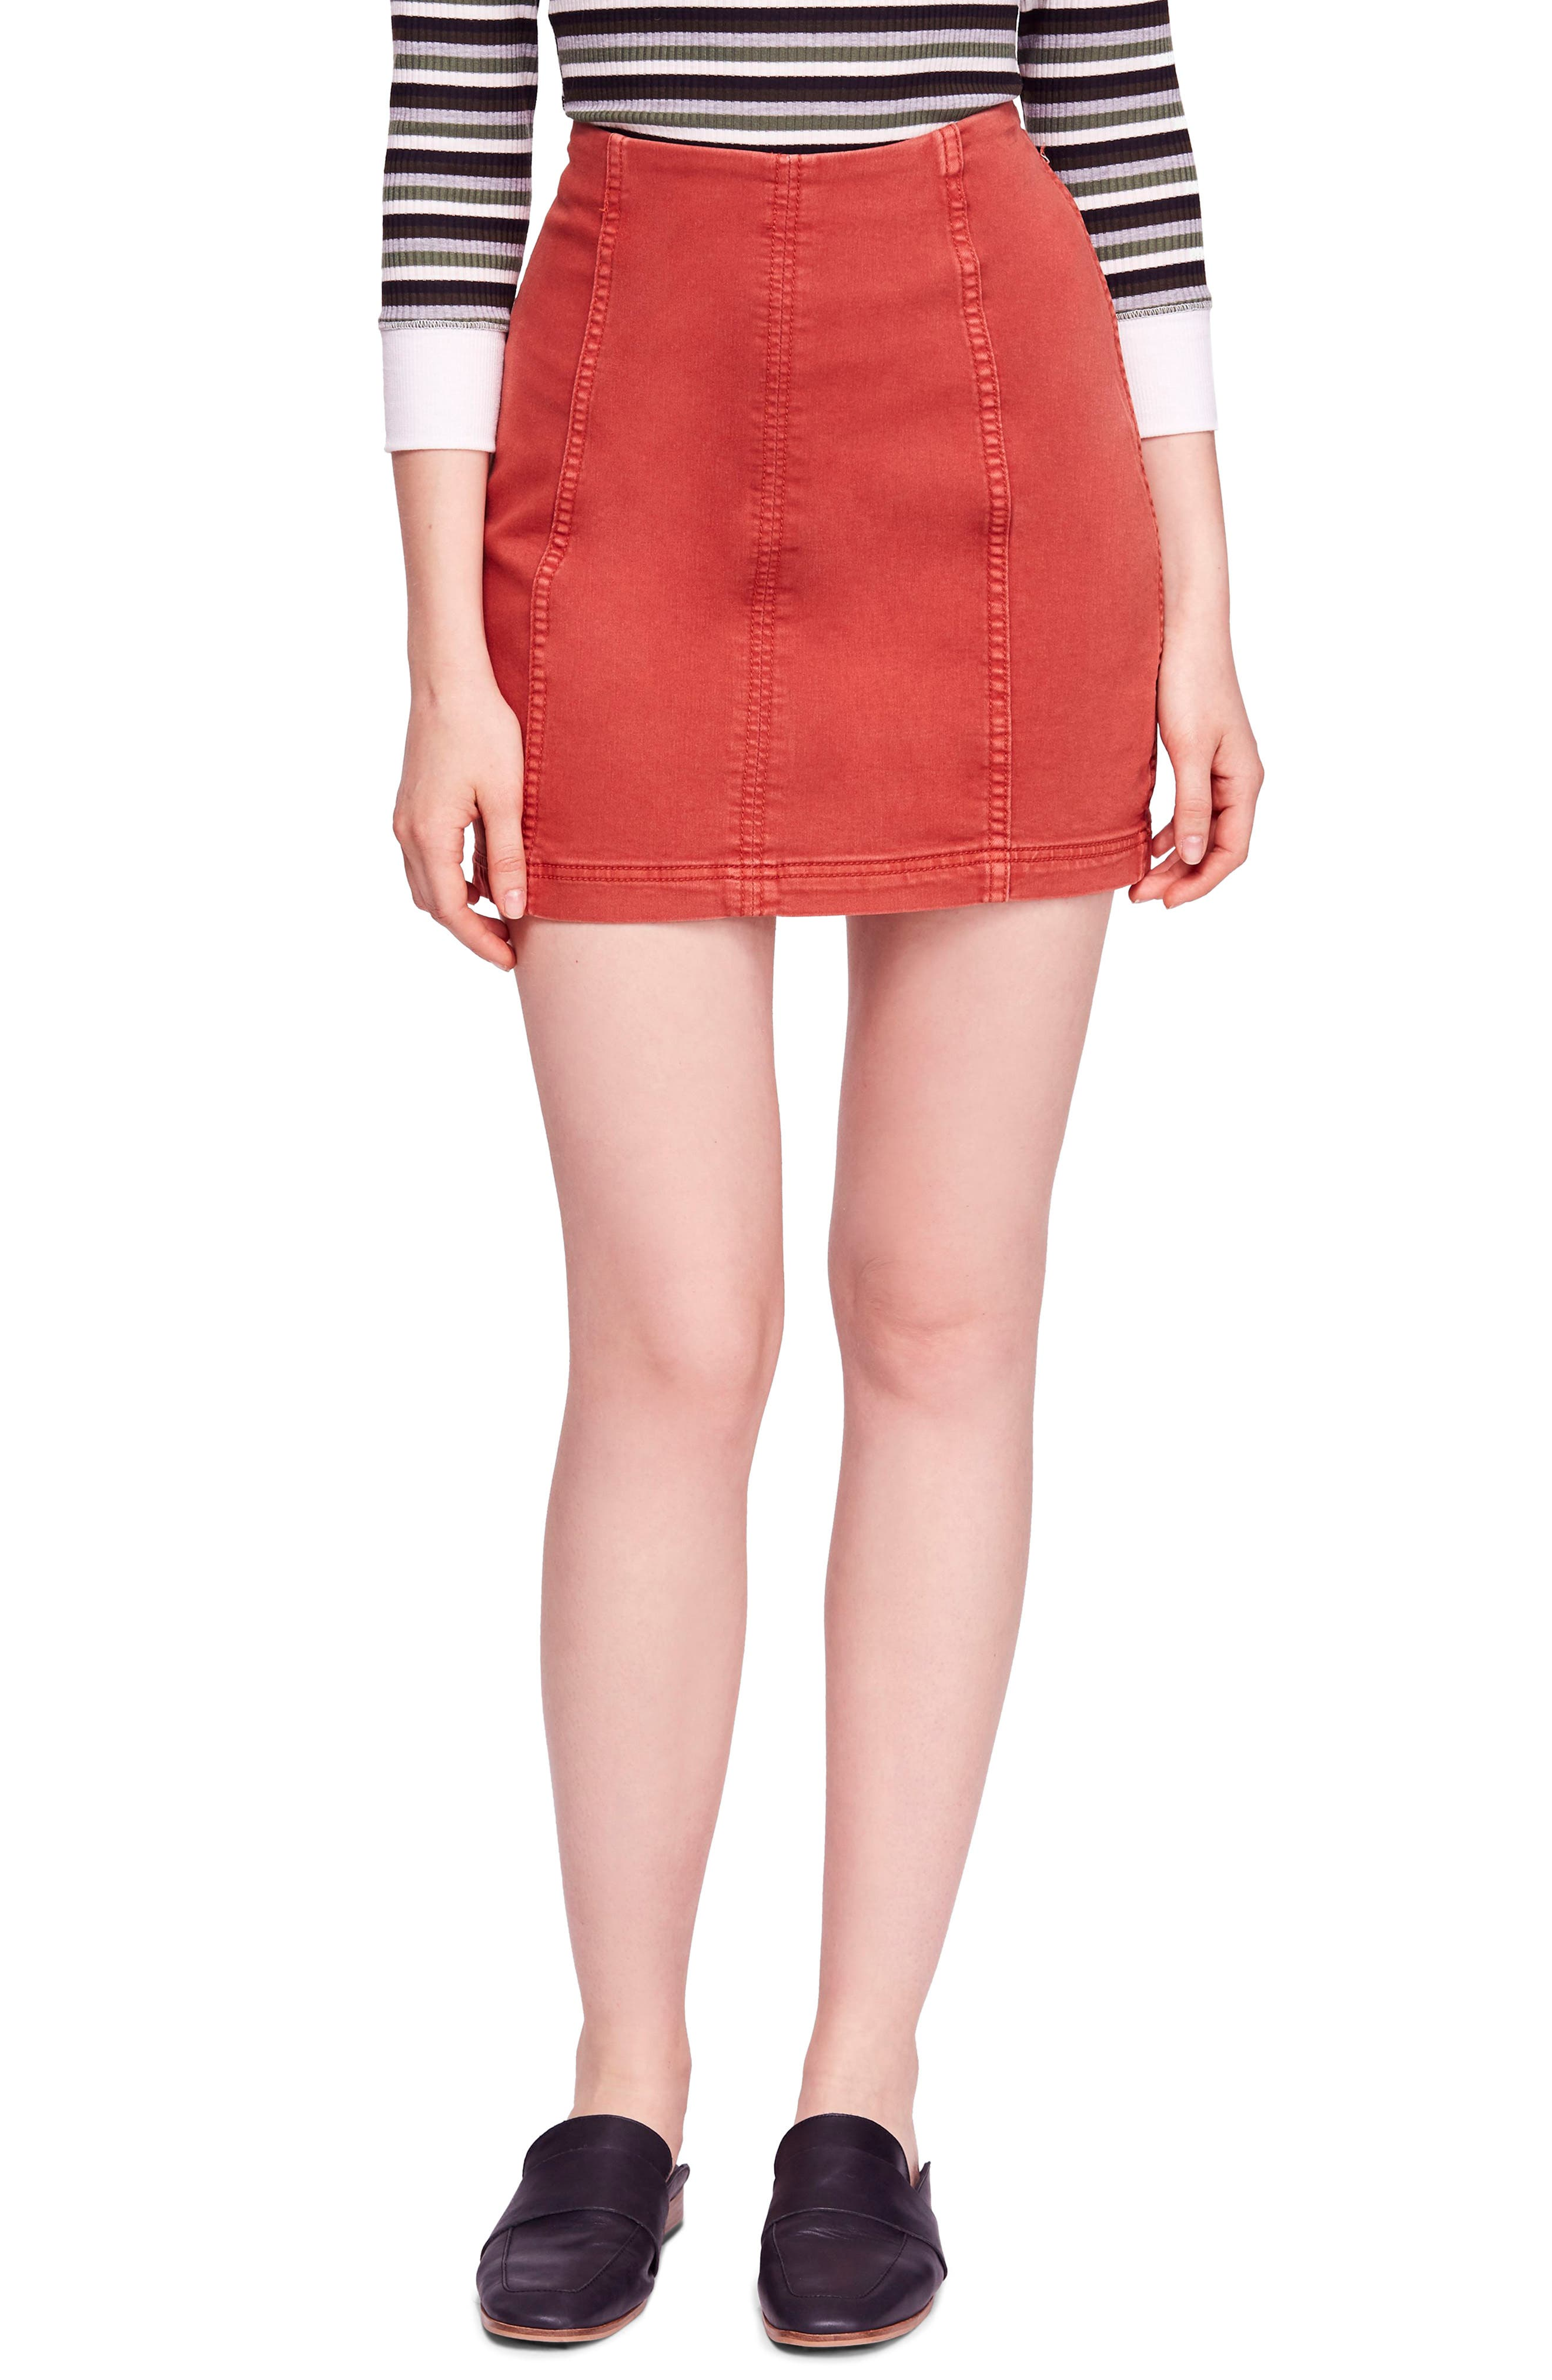 FREE PEOPLE, We the Free by Free People Modern Denim Skirt, Main thumbnail 1, color, TERRACOTTA